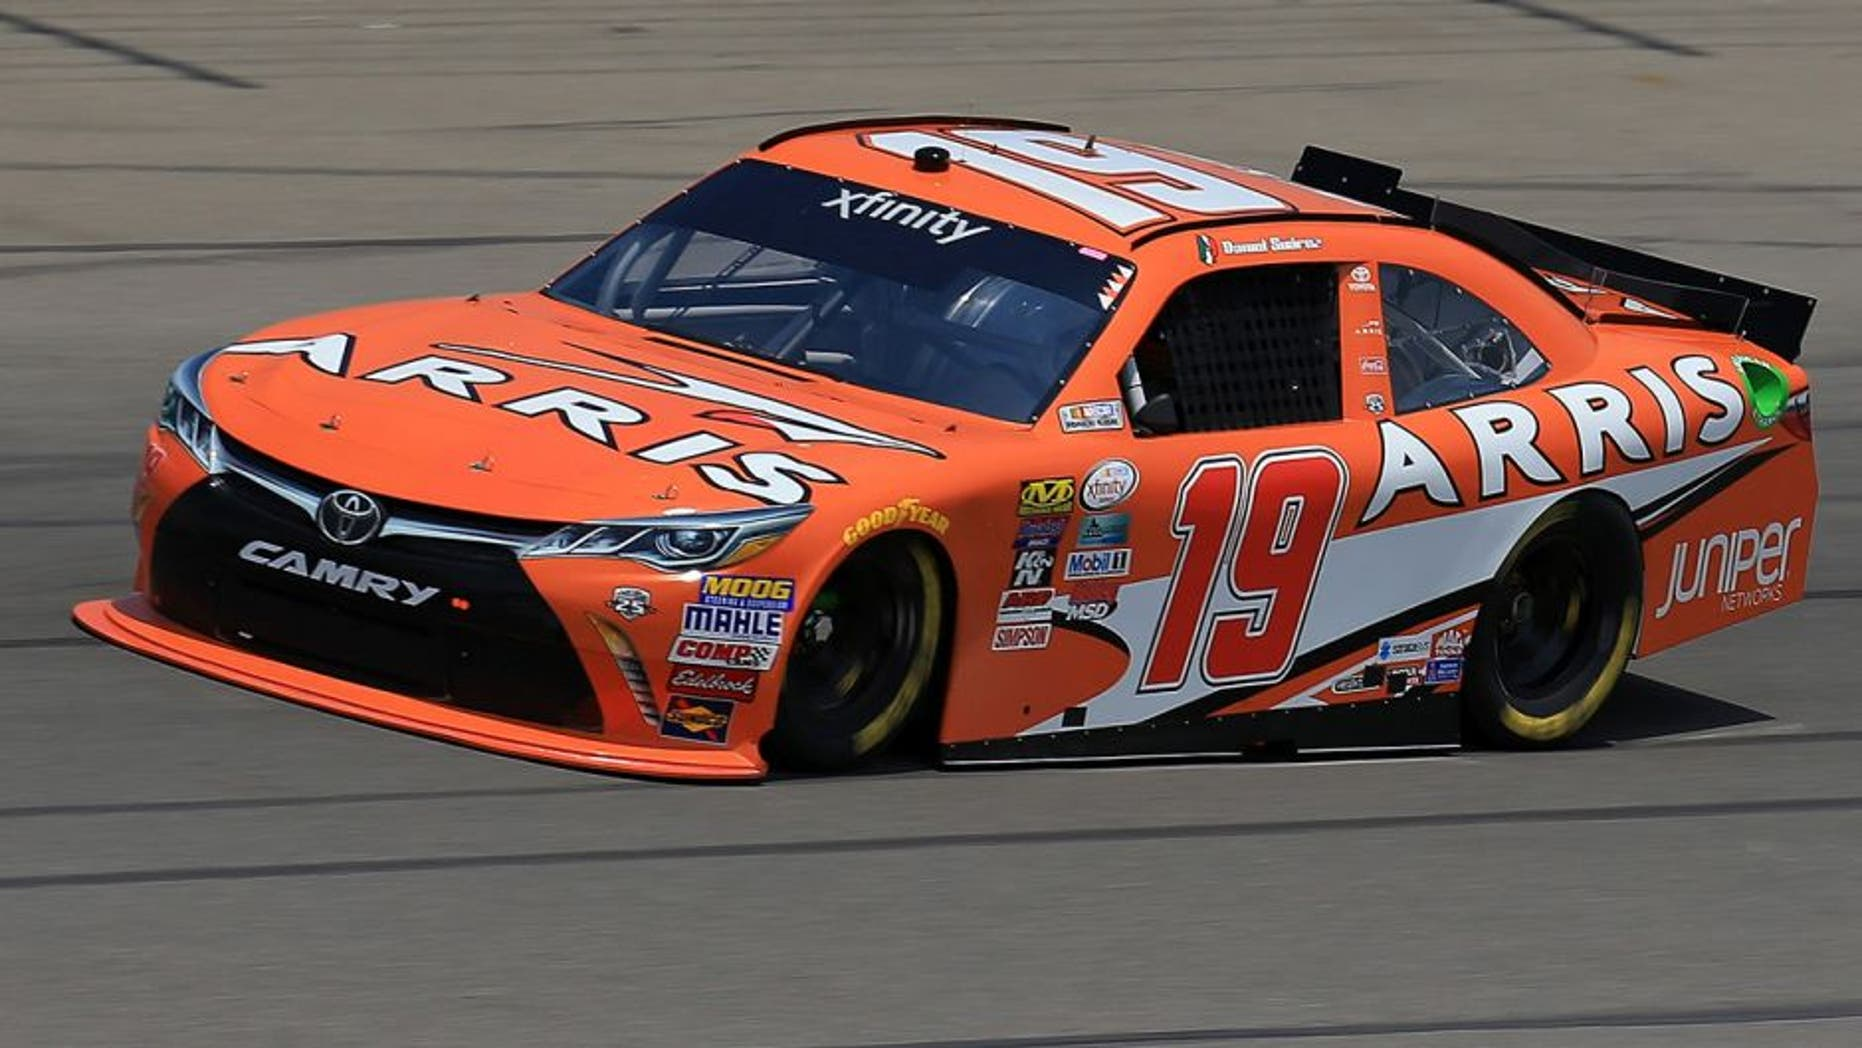 BROOKLYN, MI - JUNE 10: Daniel Suarez, driver of the #19 ARRIS Toyota, drives during practice for the NASCAR XFINITY Series Menards 250 at Michigan International Speedway on June 11, 2016 in Brooklyn, Michigan. (Photo by Daniel Shirey/NASCAR via Getty Images)